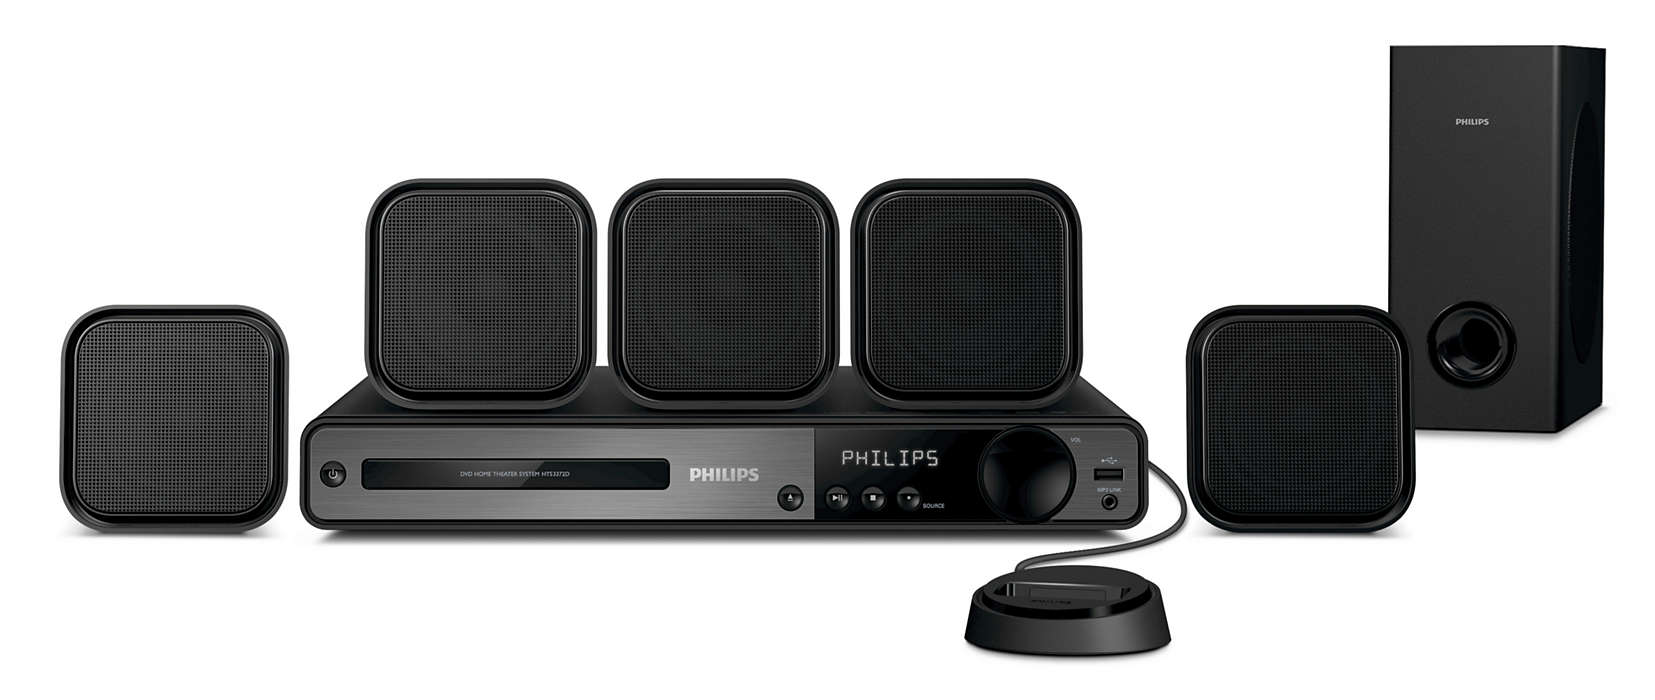 Spectacular surround sound with superb clarity